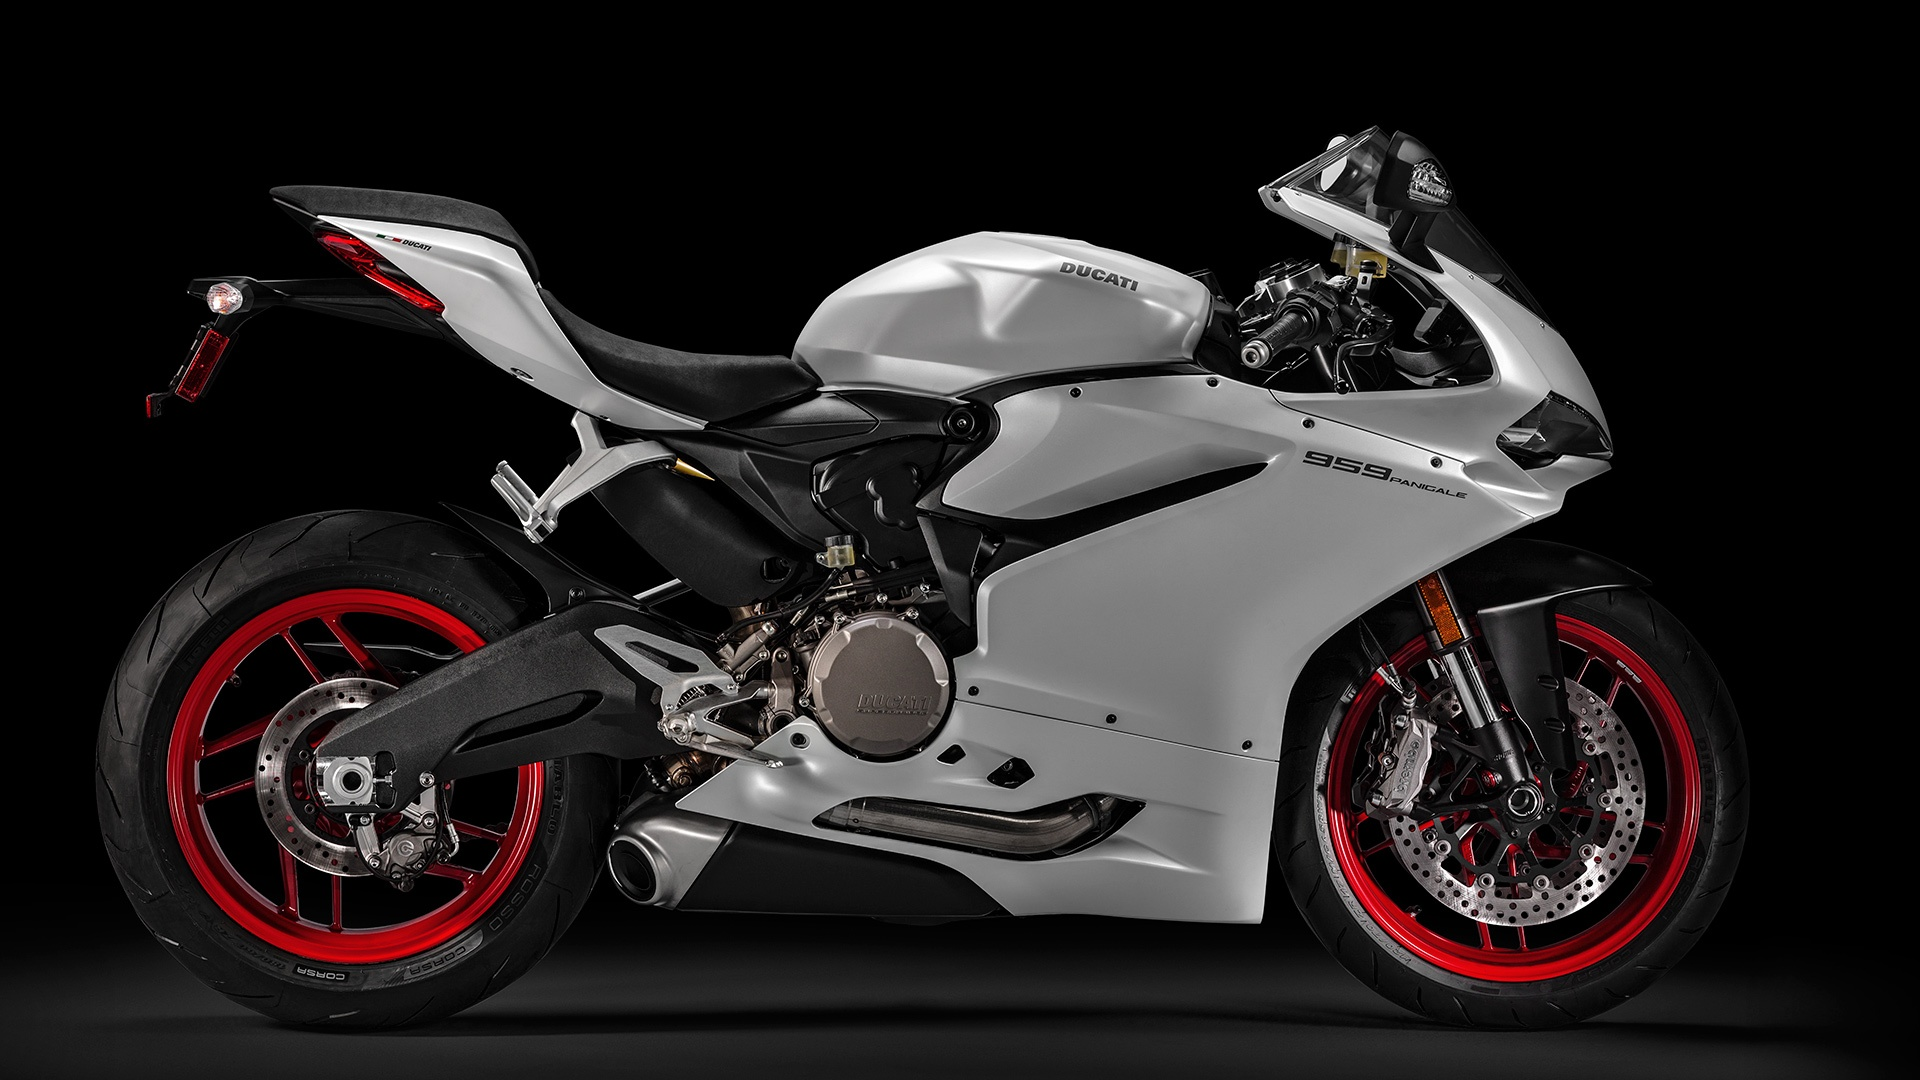 2017 Ducati Superbike 959 Panigale (US version) in Daytona Beach, Florida